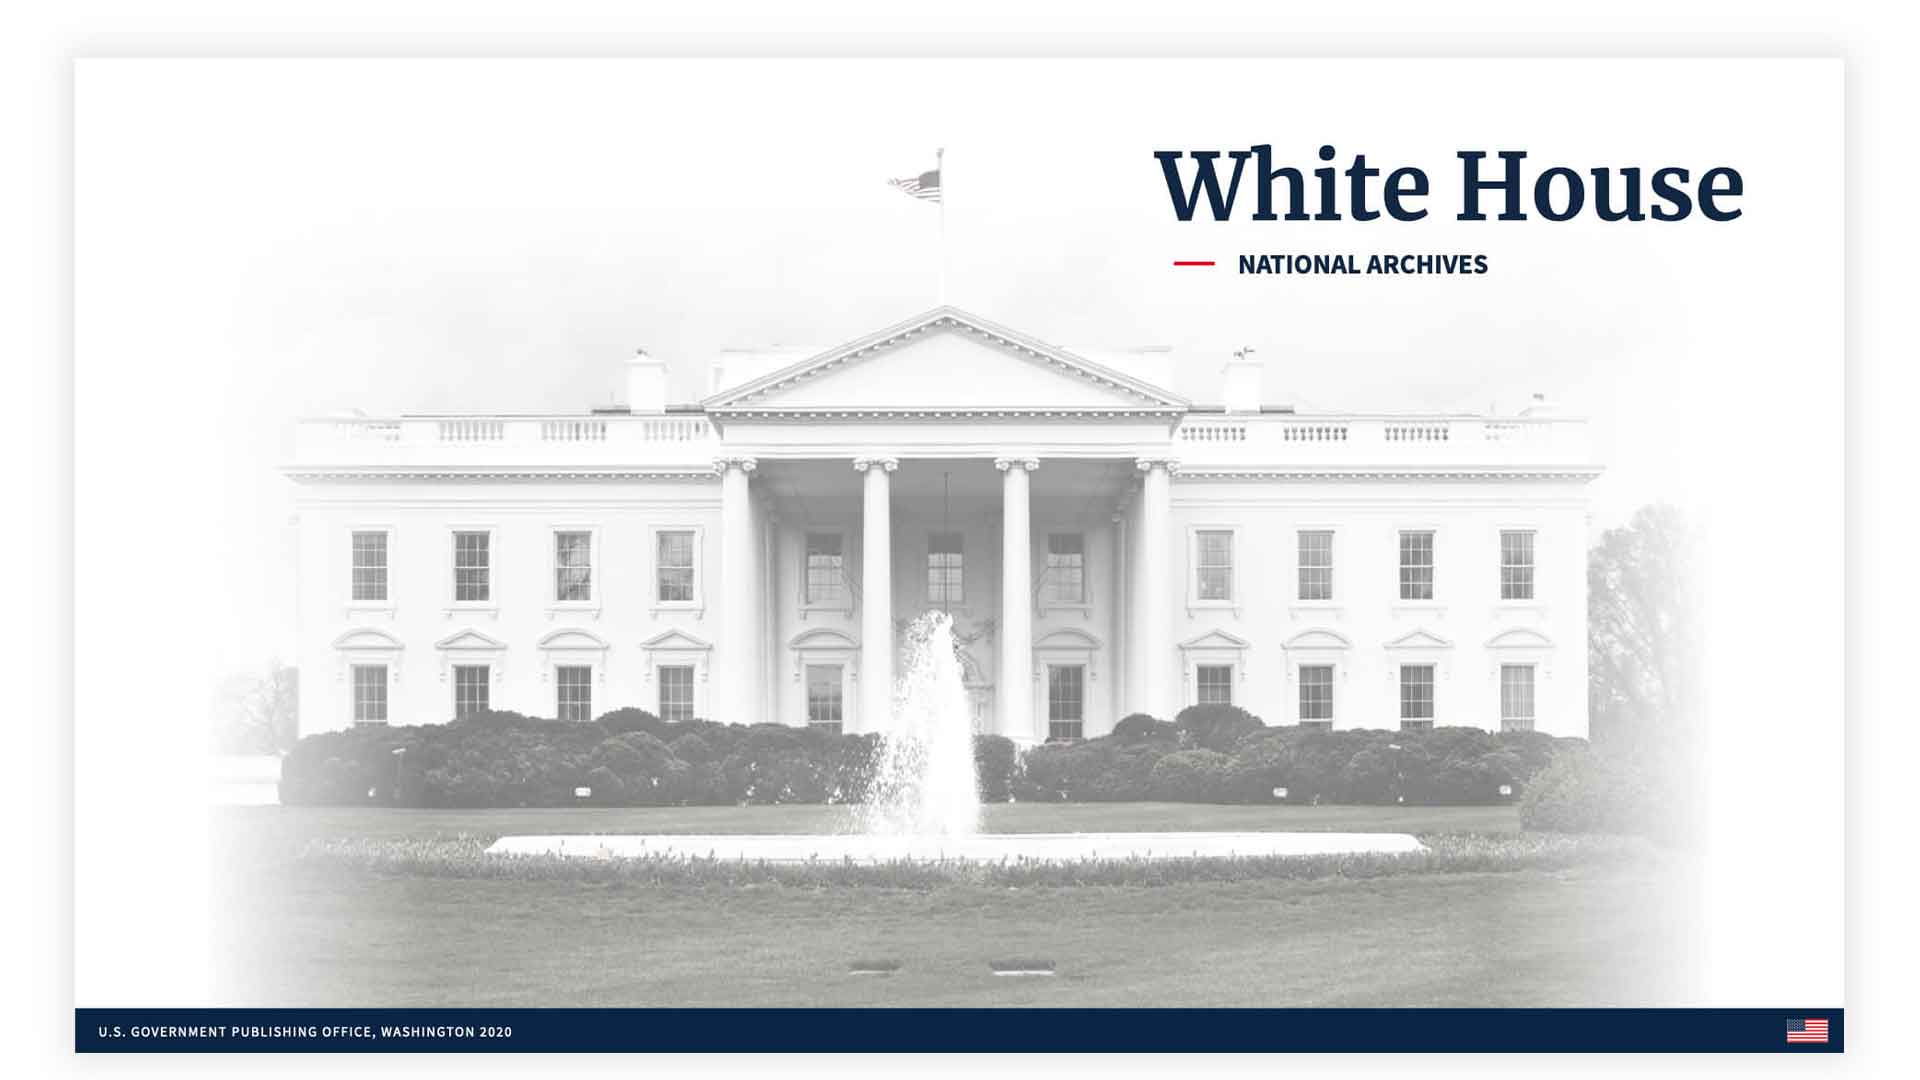 PPT Design White House